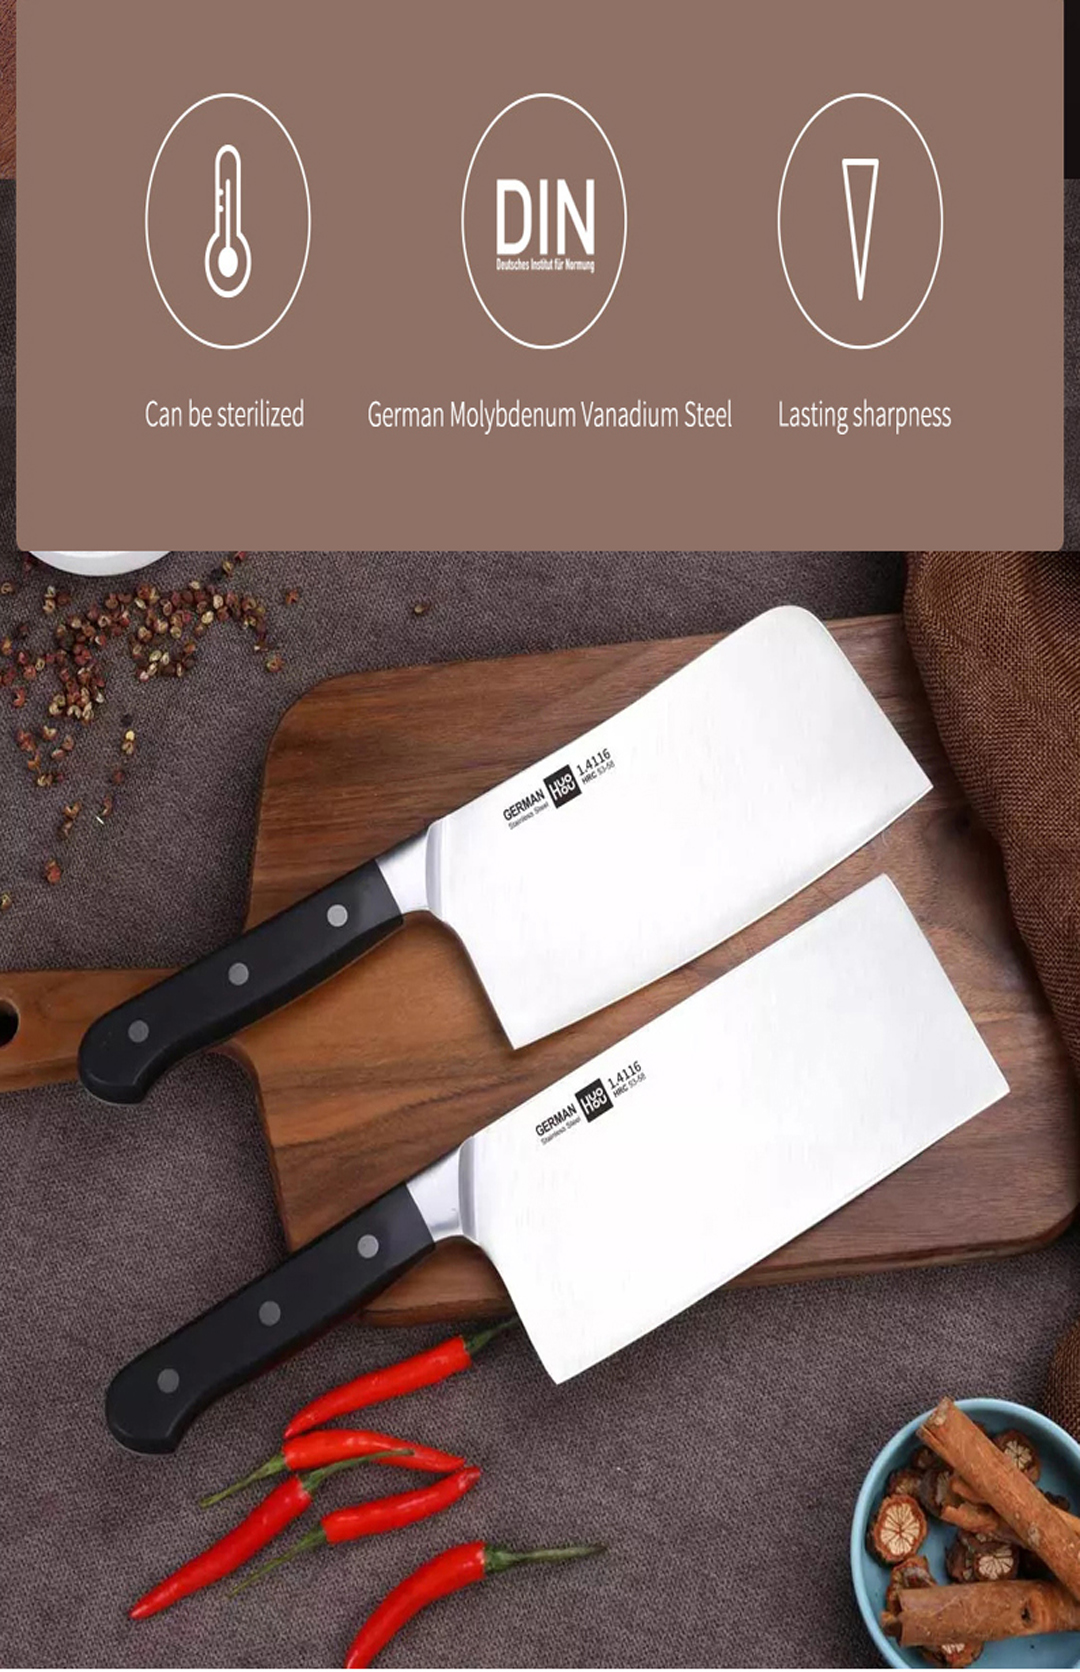 HUOHOU Stainless Steel Kitchen Knife Chef Knife Sharp Slicer Blade Slicing Utility Knife Tool from Xiaomi Youpin